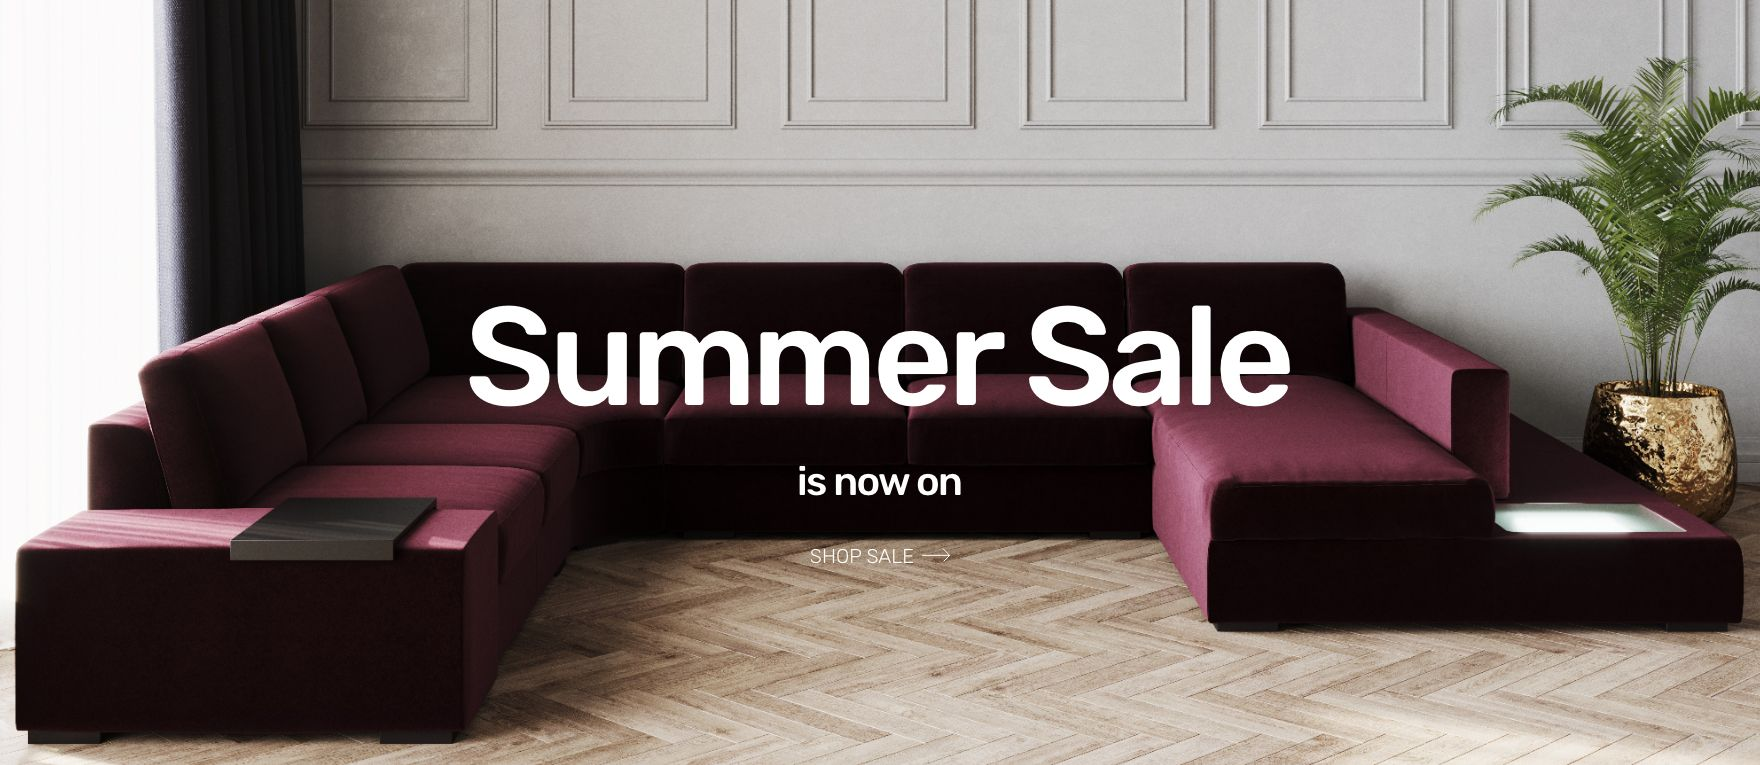 Easter Sale Extended Shop Now Italian Furniture Modern Italian Style Furniture Italian Furniture Stores